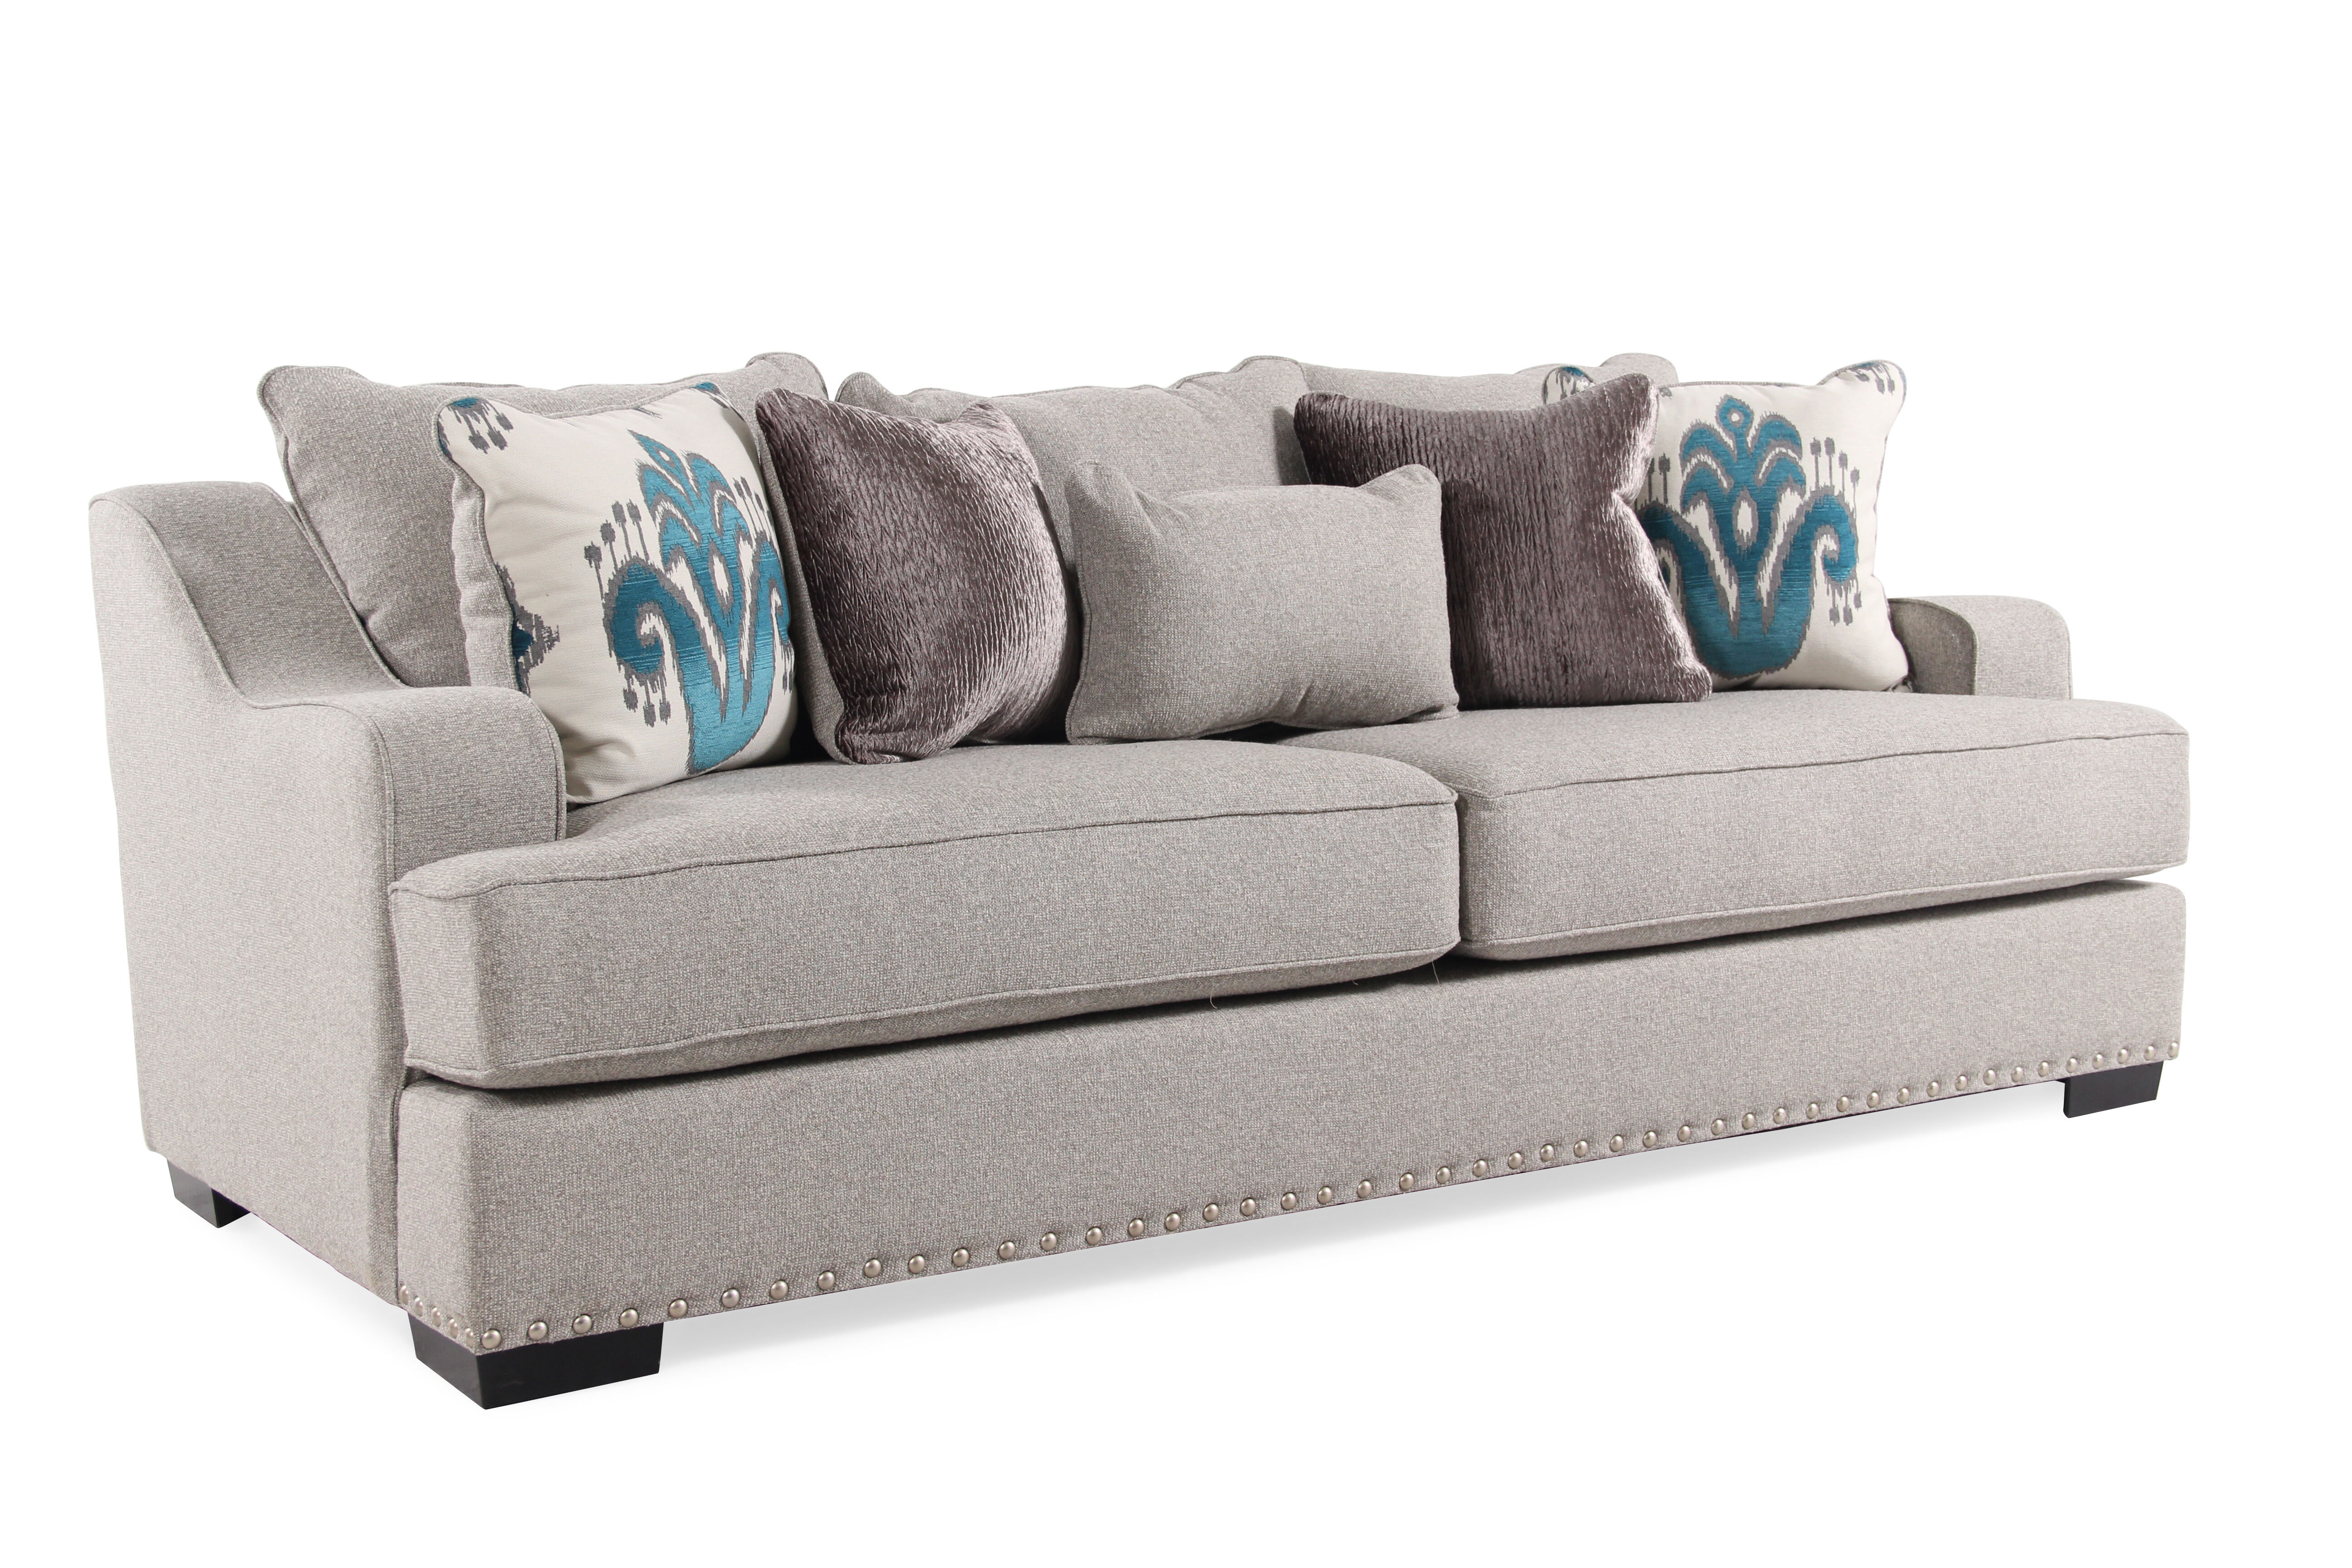 Michael Nicholas Jayne Sofa Mathis Brothers Furniture  sc 1 st  Sofa Hpricot.com : michael nicholas designs sectional - Sectionals, Sofas & Couches